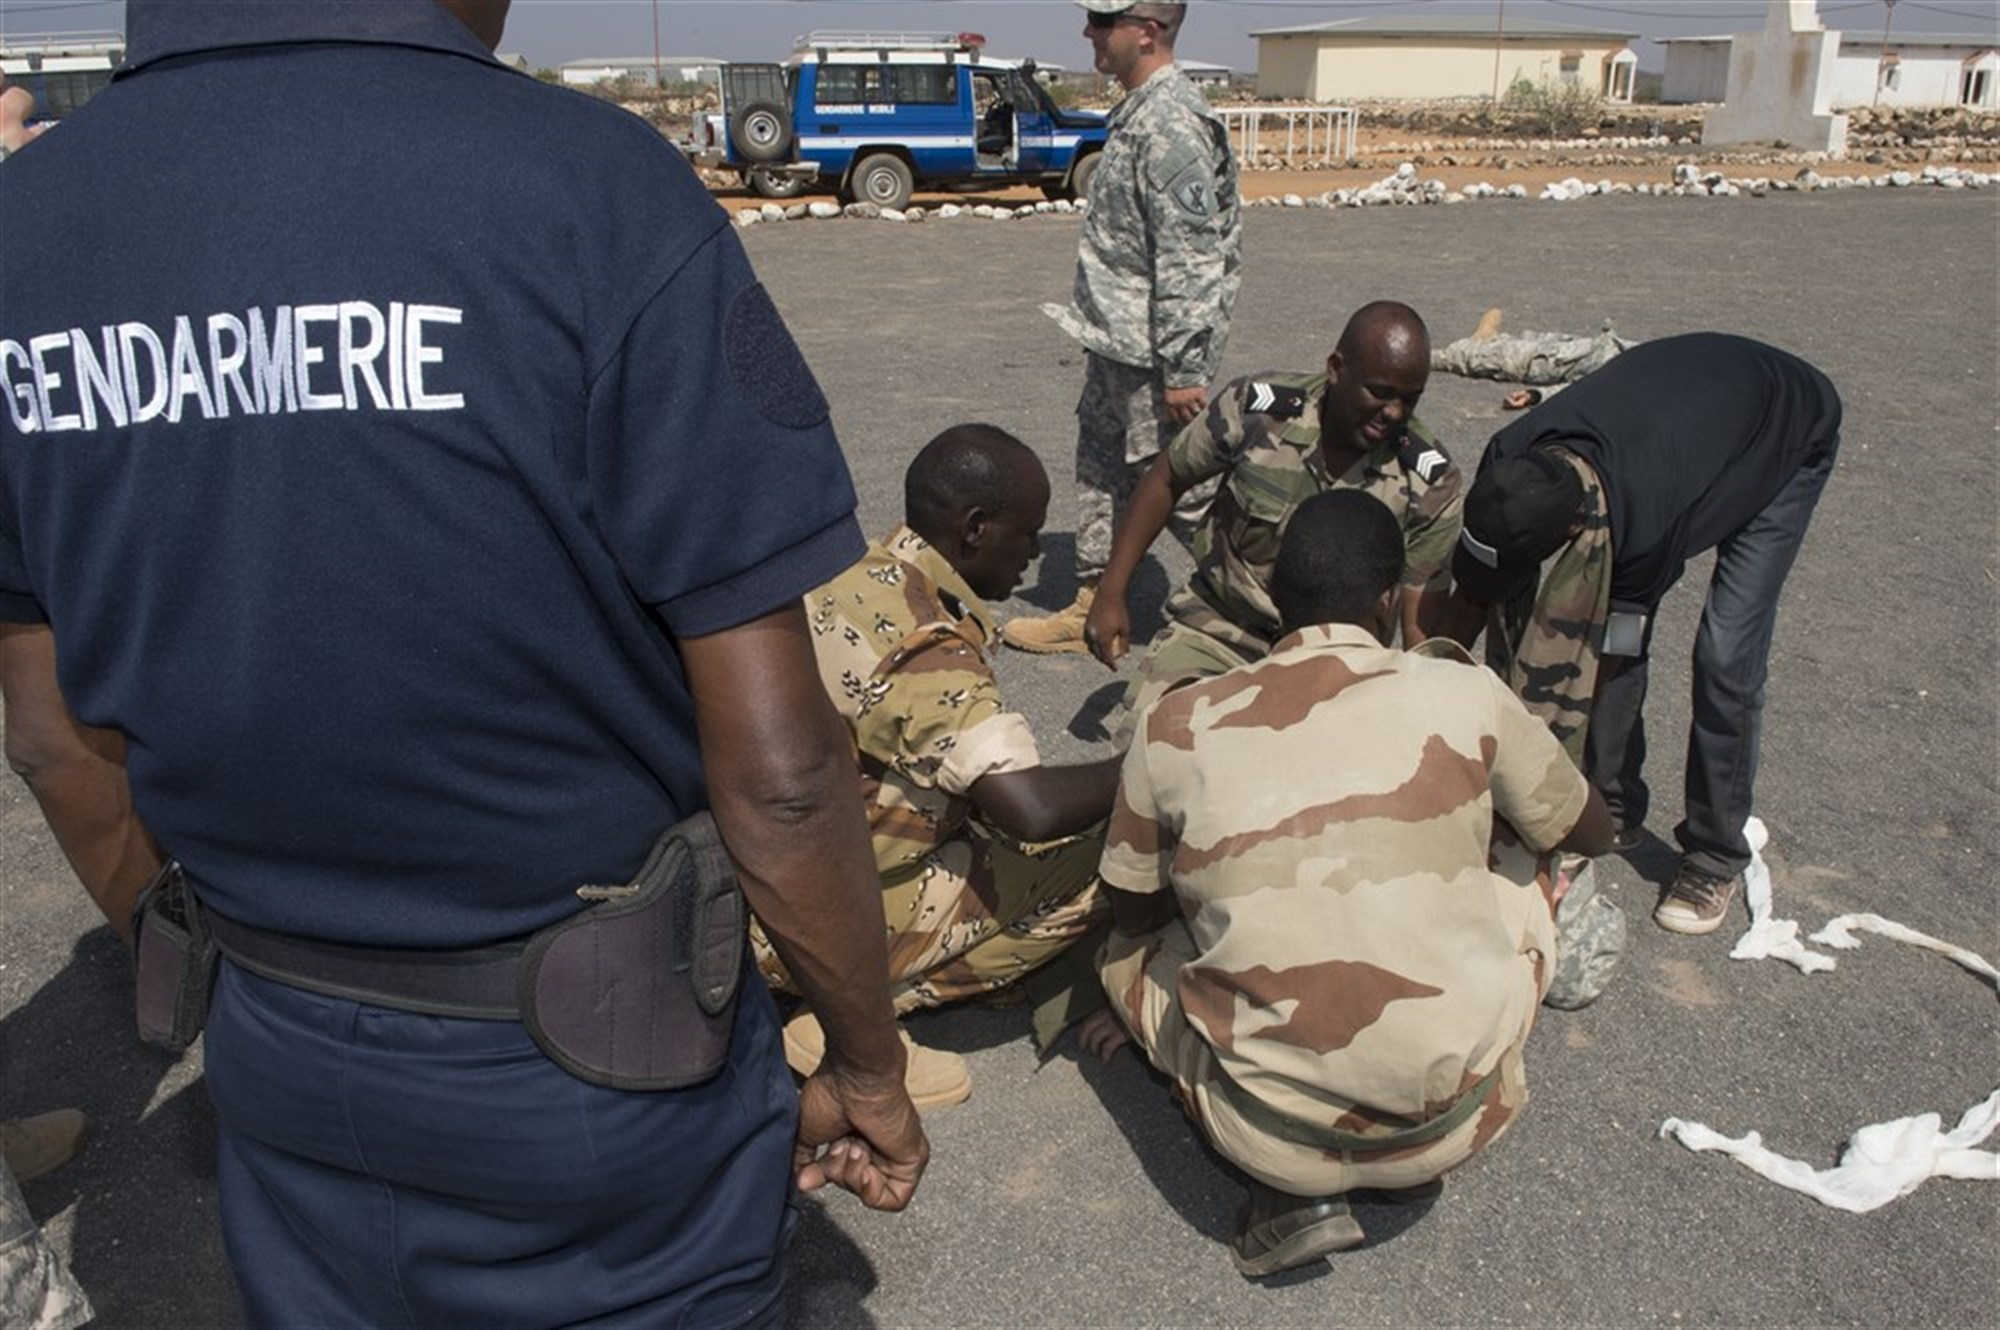 Captain Abdi Daher, Commander of Squadron 2 Gendarmerie Mobile (left) over watches his crew performing medical care during an mass casualty scenario during the First Aid Best Practice Exchange between, the Djibouti Gendarmerie, 404th and 407th Civil Affairs Battalions and the 1-77 Armored Regiment health care specialists in Cheik Moussa, Djibouti, Apr. 4, 2015. (U.S. Air Force Photos by Staff Sgt. Carlin Leslie)